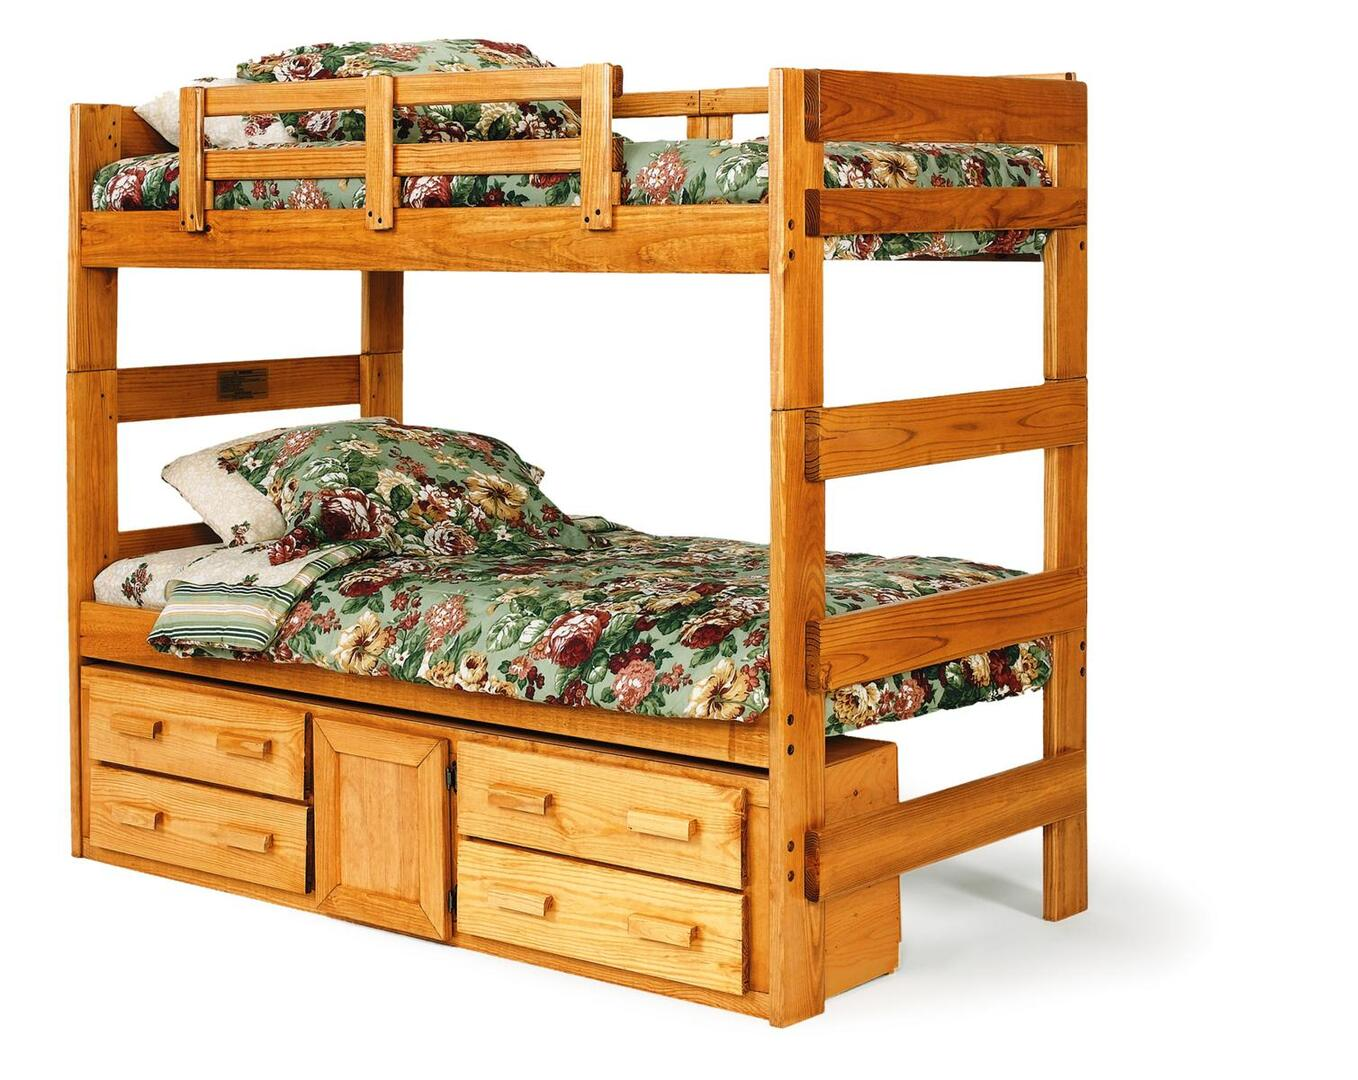 Chelsea home furniture 36620011305 twin size loft bed for Bunk bed and bang